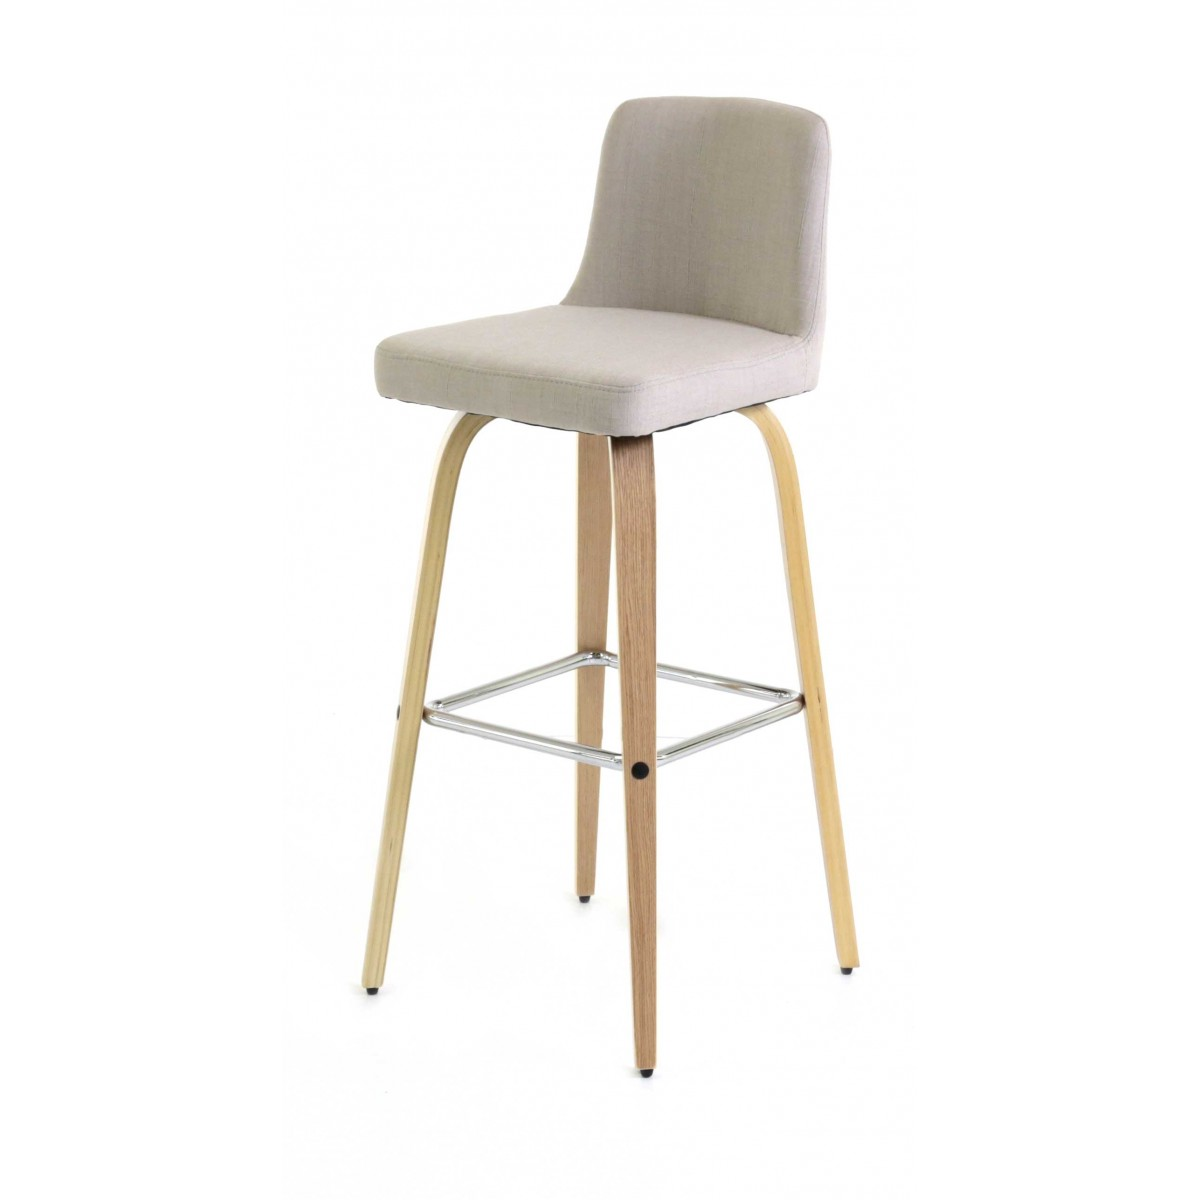 tabouret de bar beige en tissu style scandinave zago store. Black Bedroom Furniture Sets. Home Design Ideas